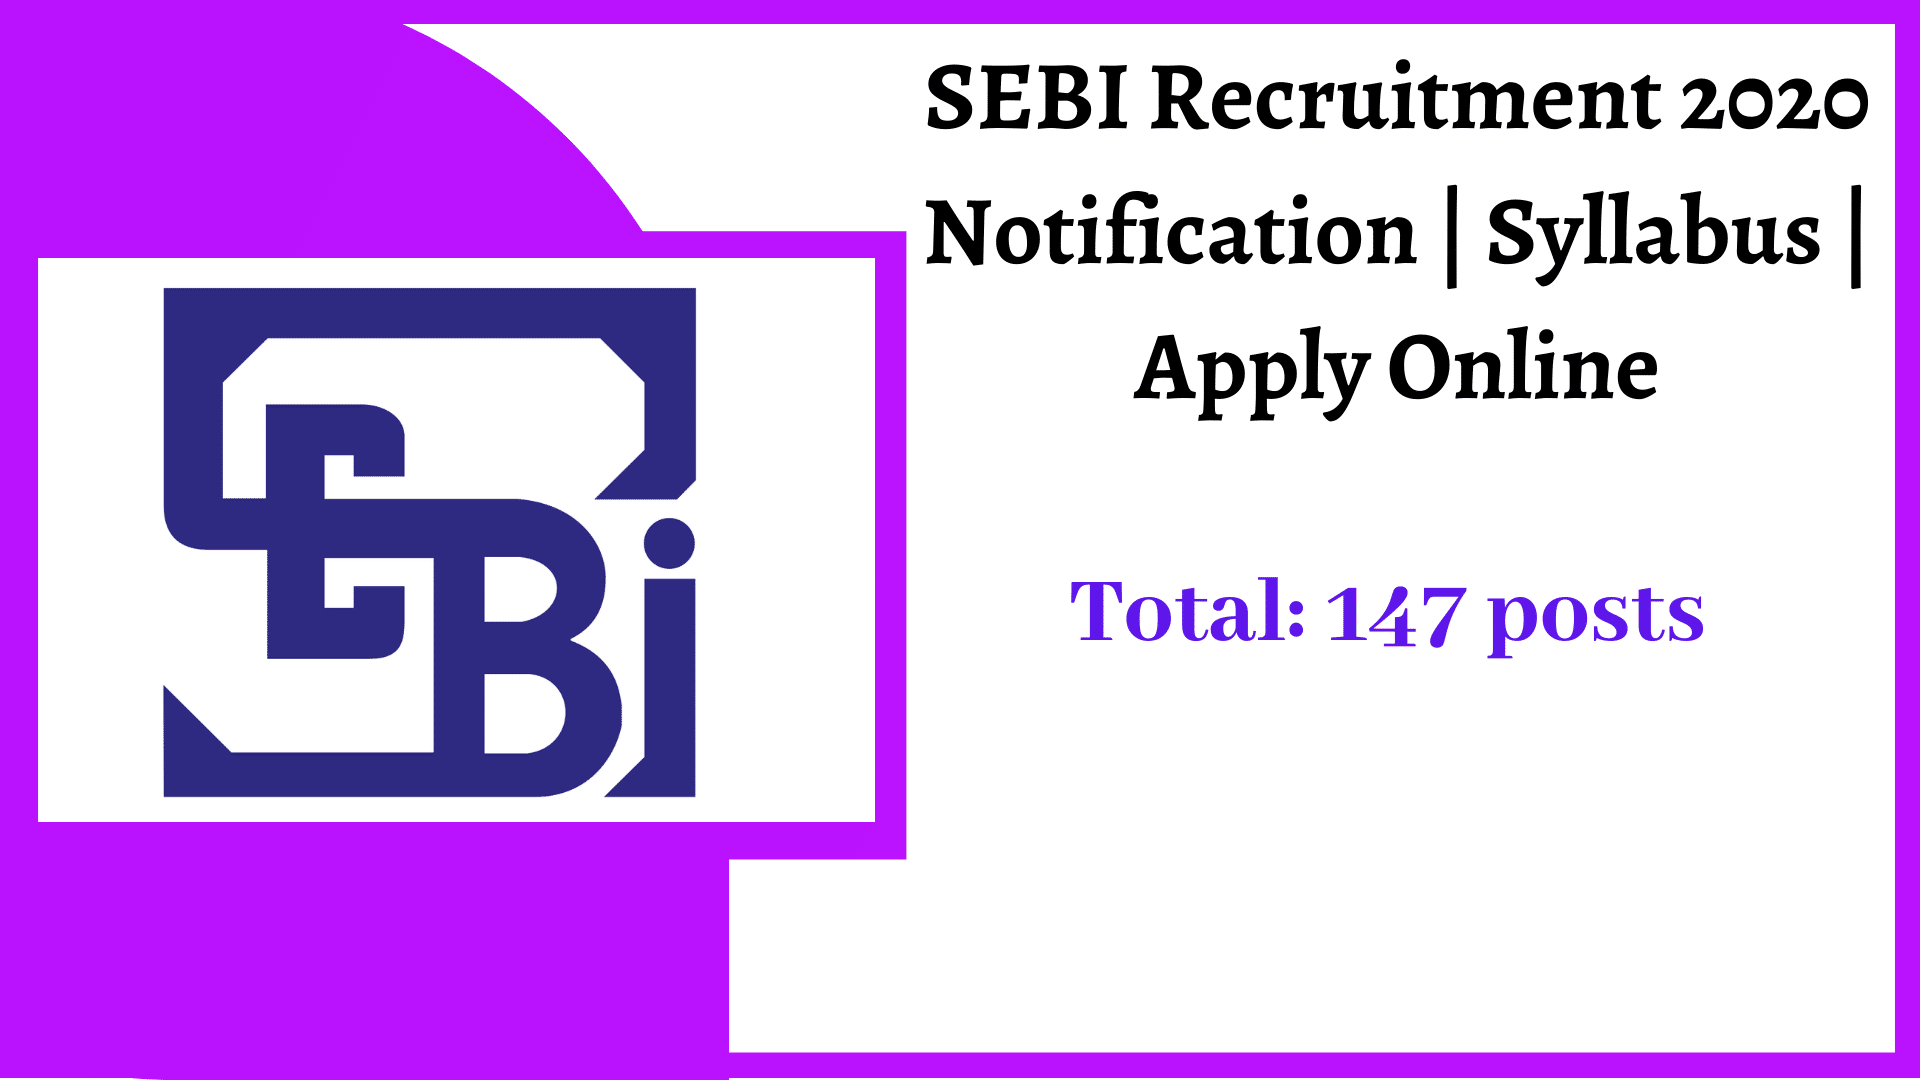 SEBI Recruitment 2020 Notification | Syllabus | Apply Online